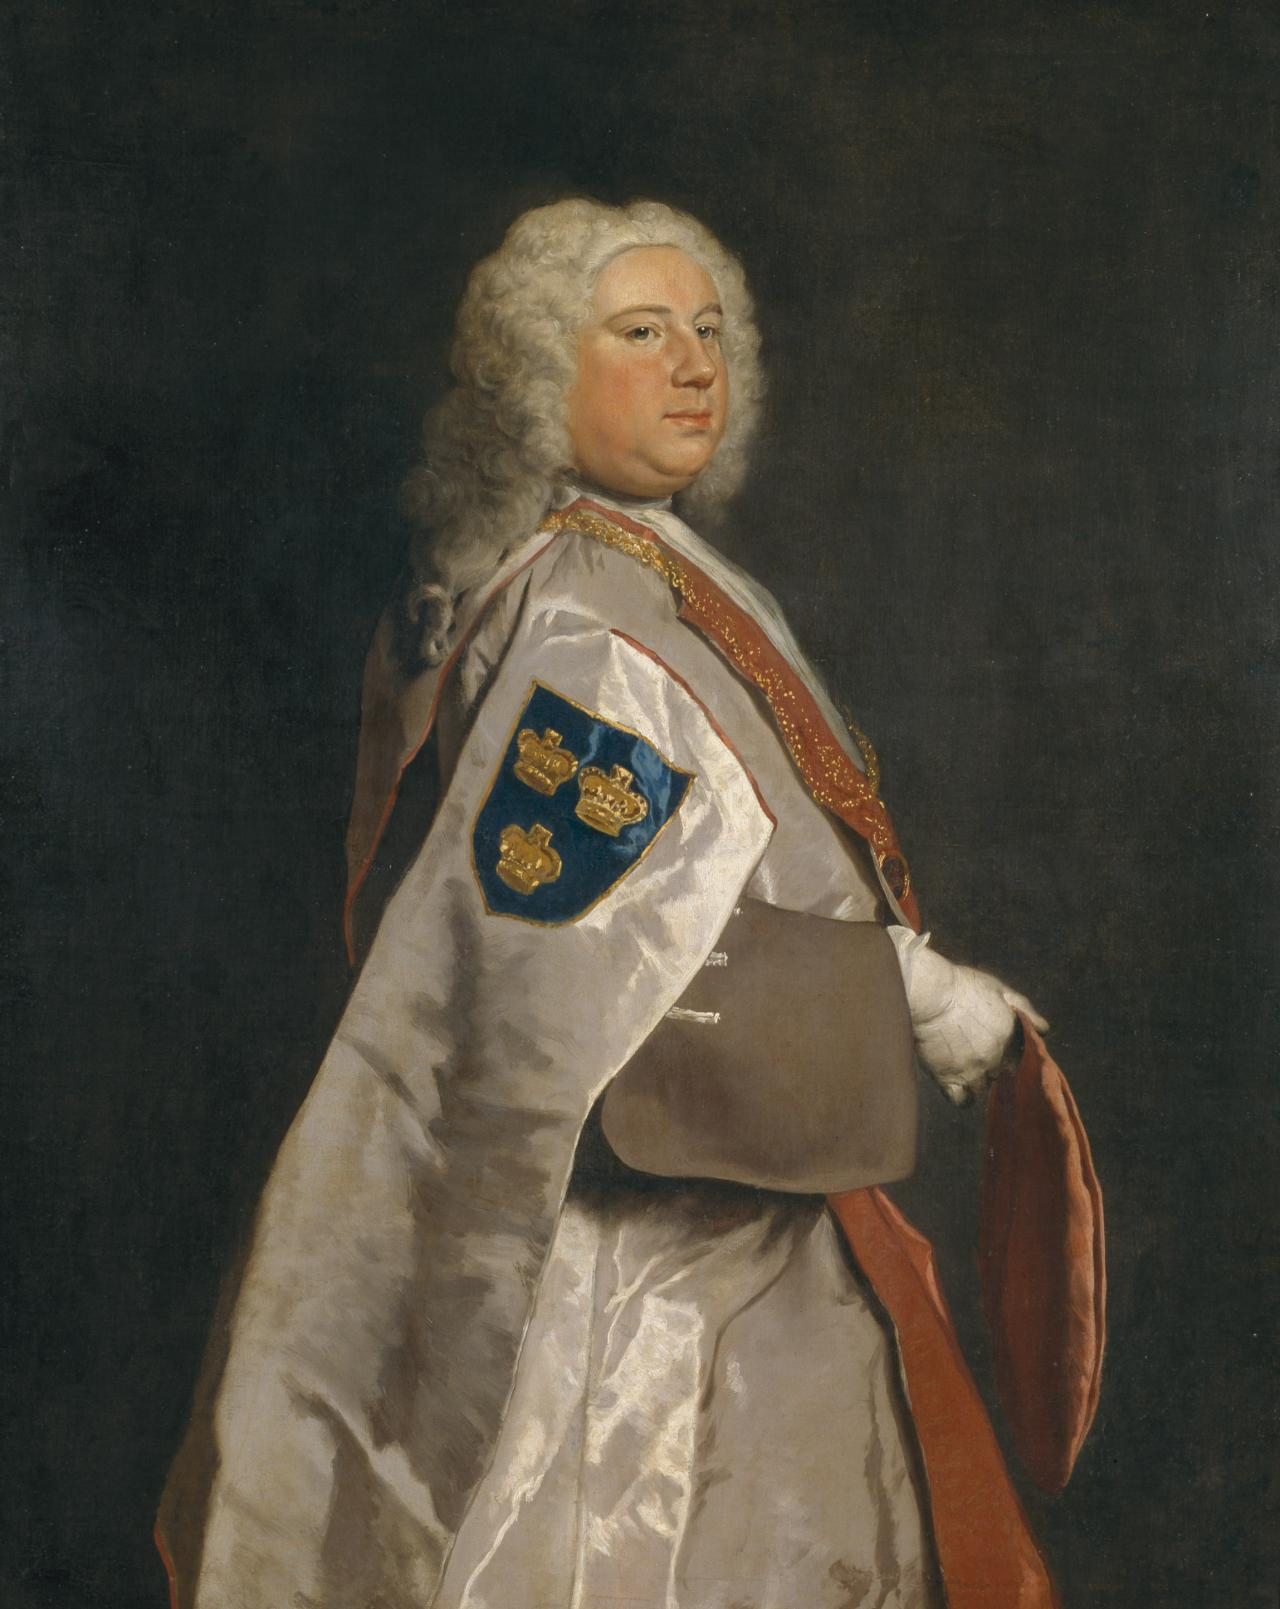 Samuel Booth, Messenger of the Order of the Bath